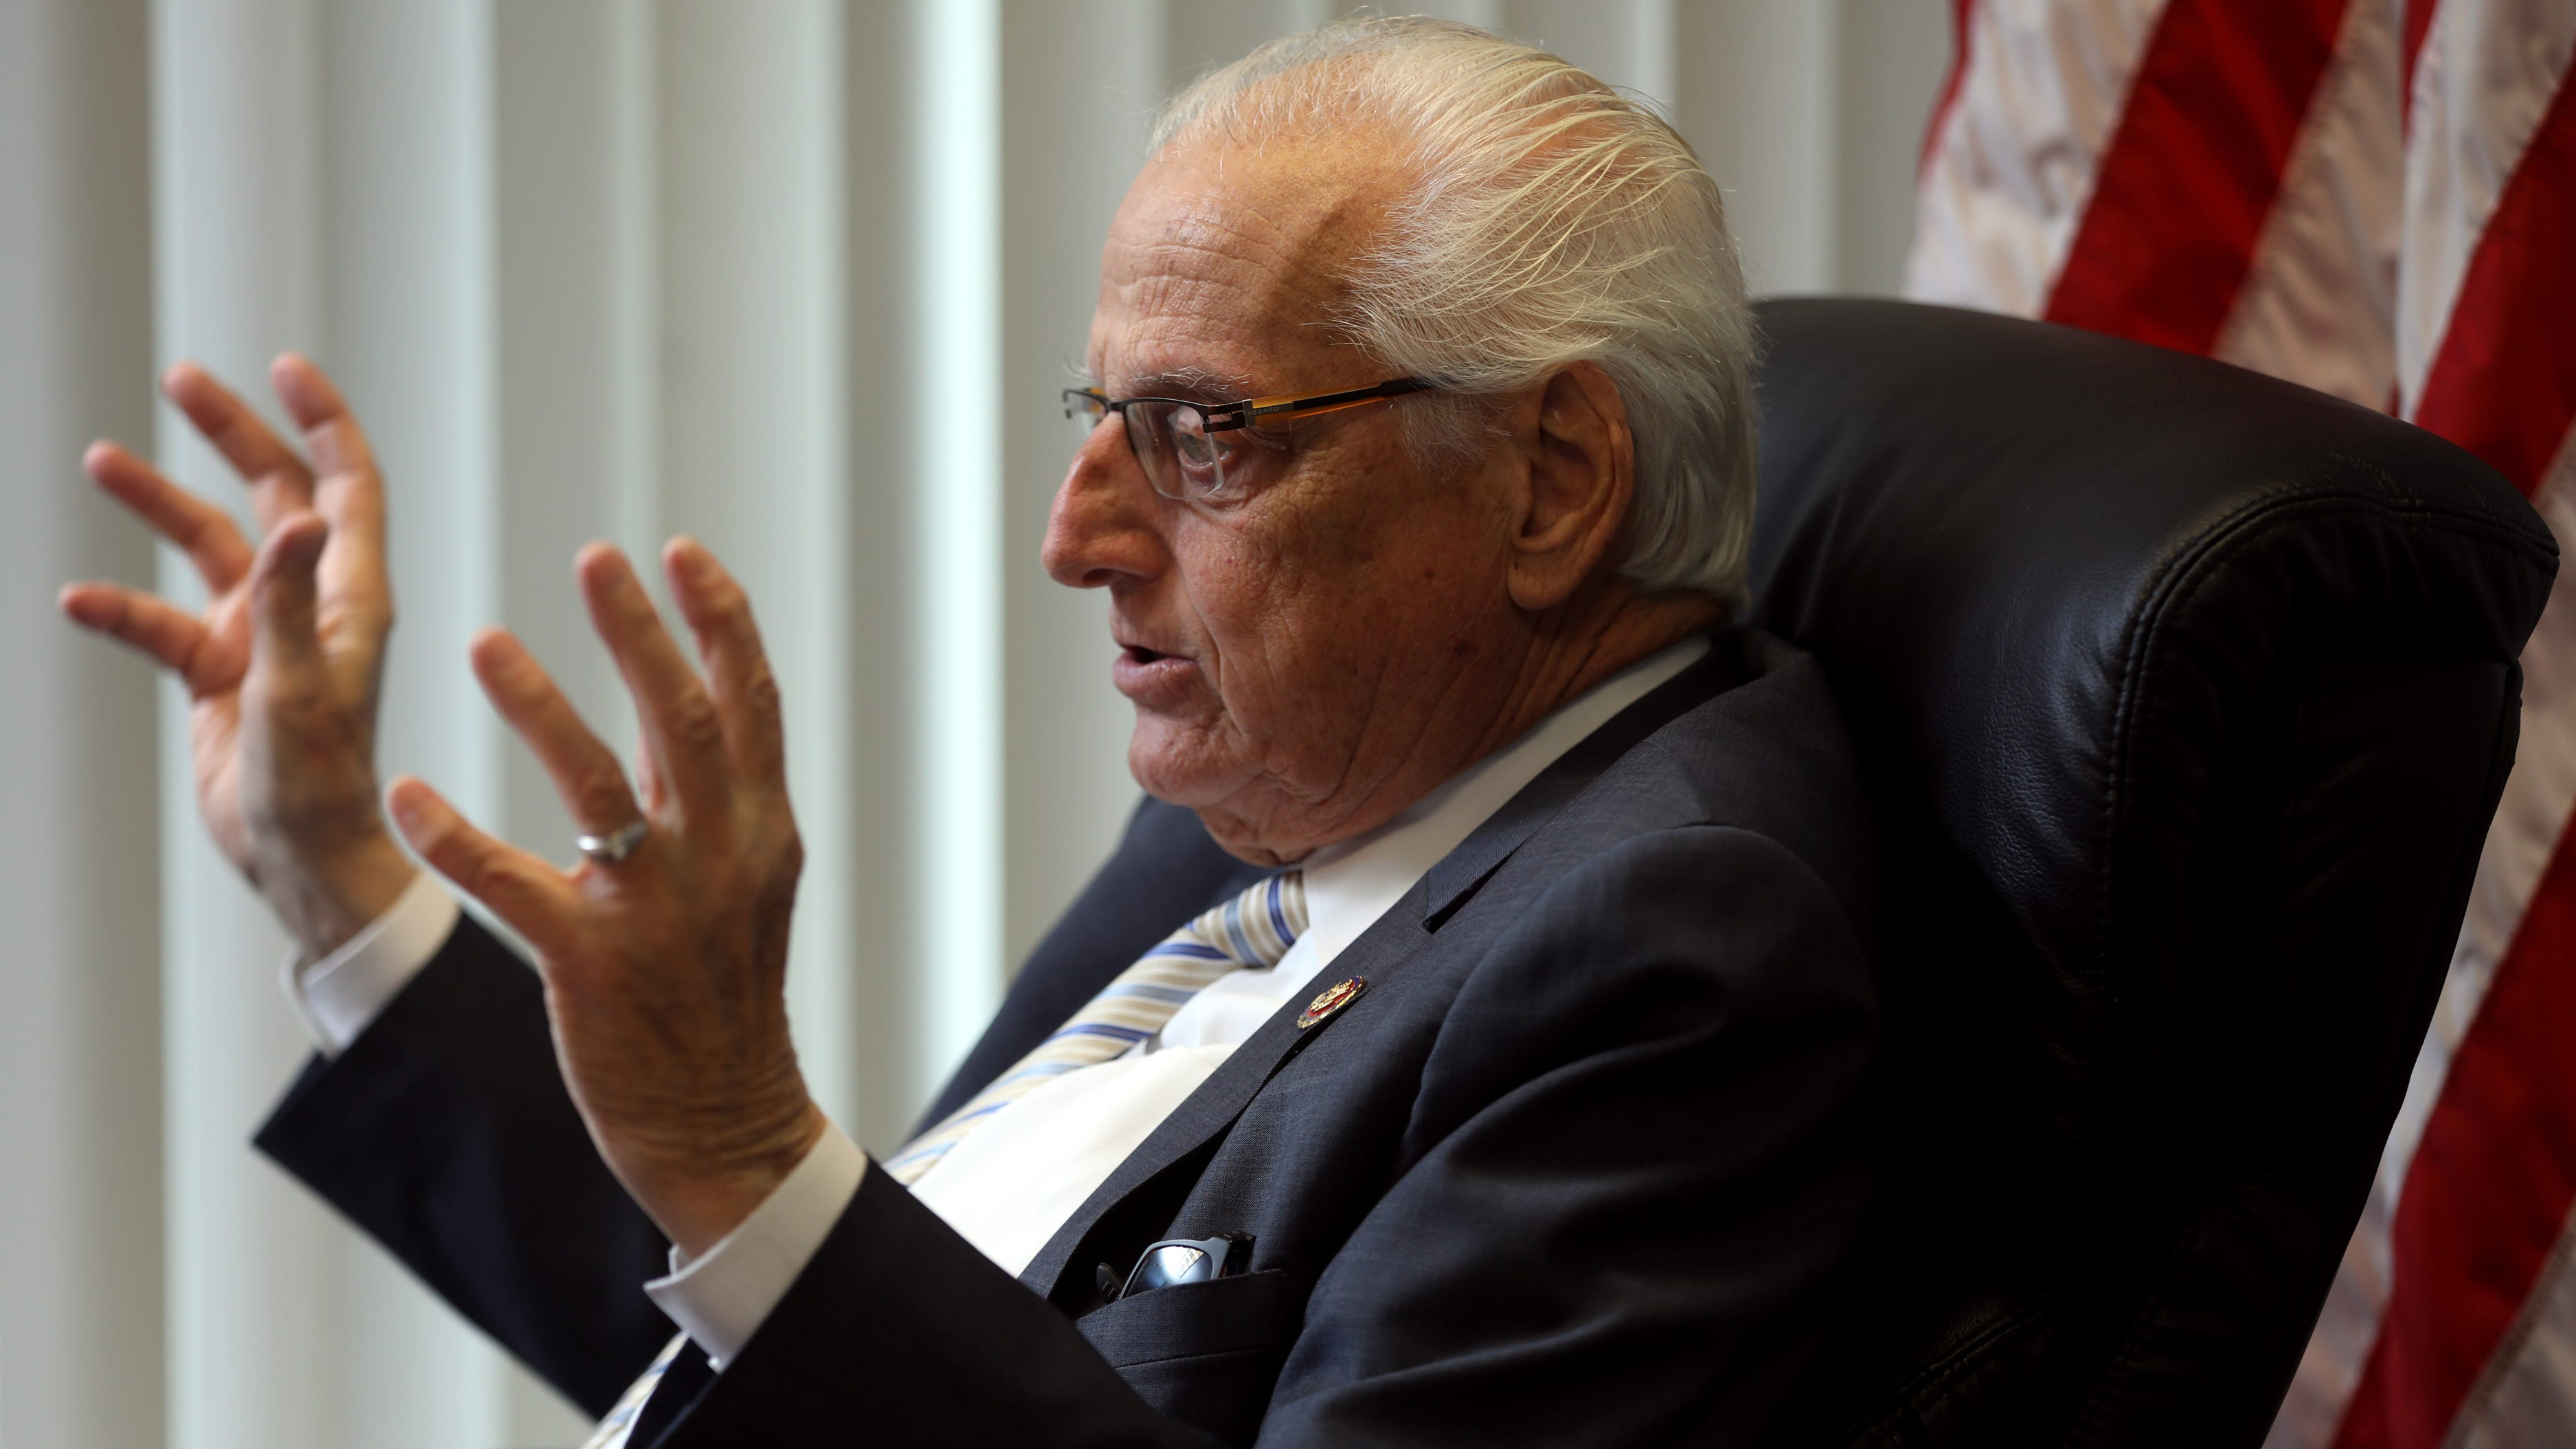 Congressman Pascrell talks about domestic terrorism